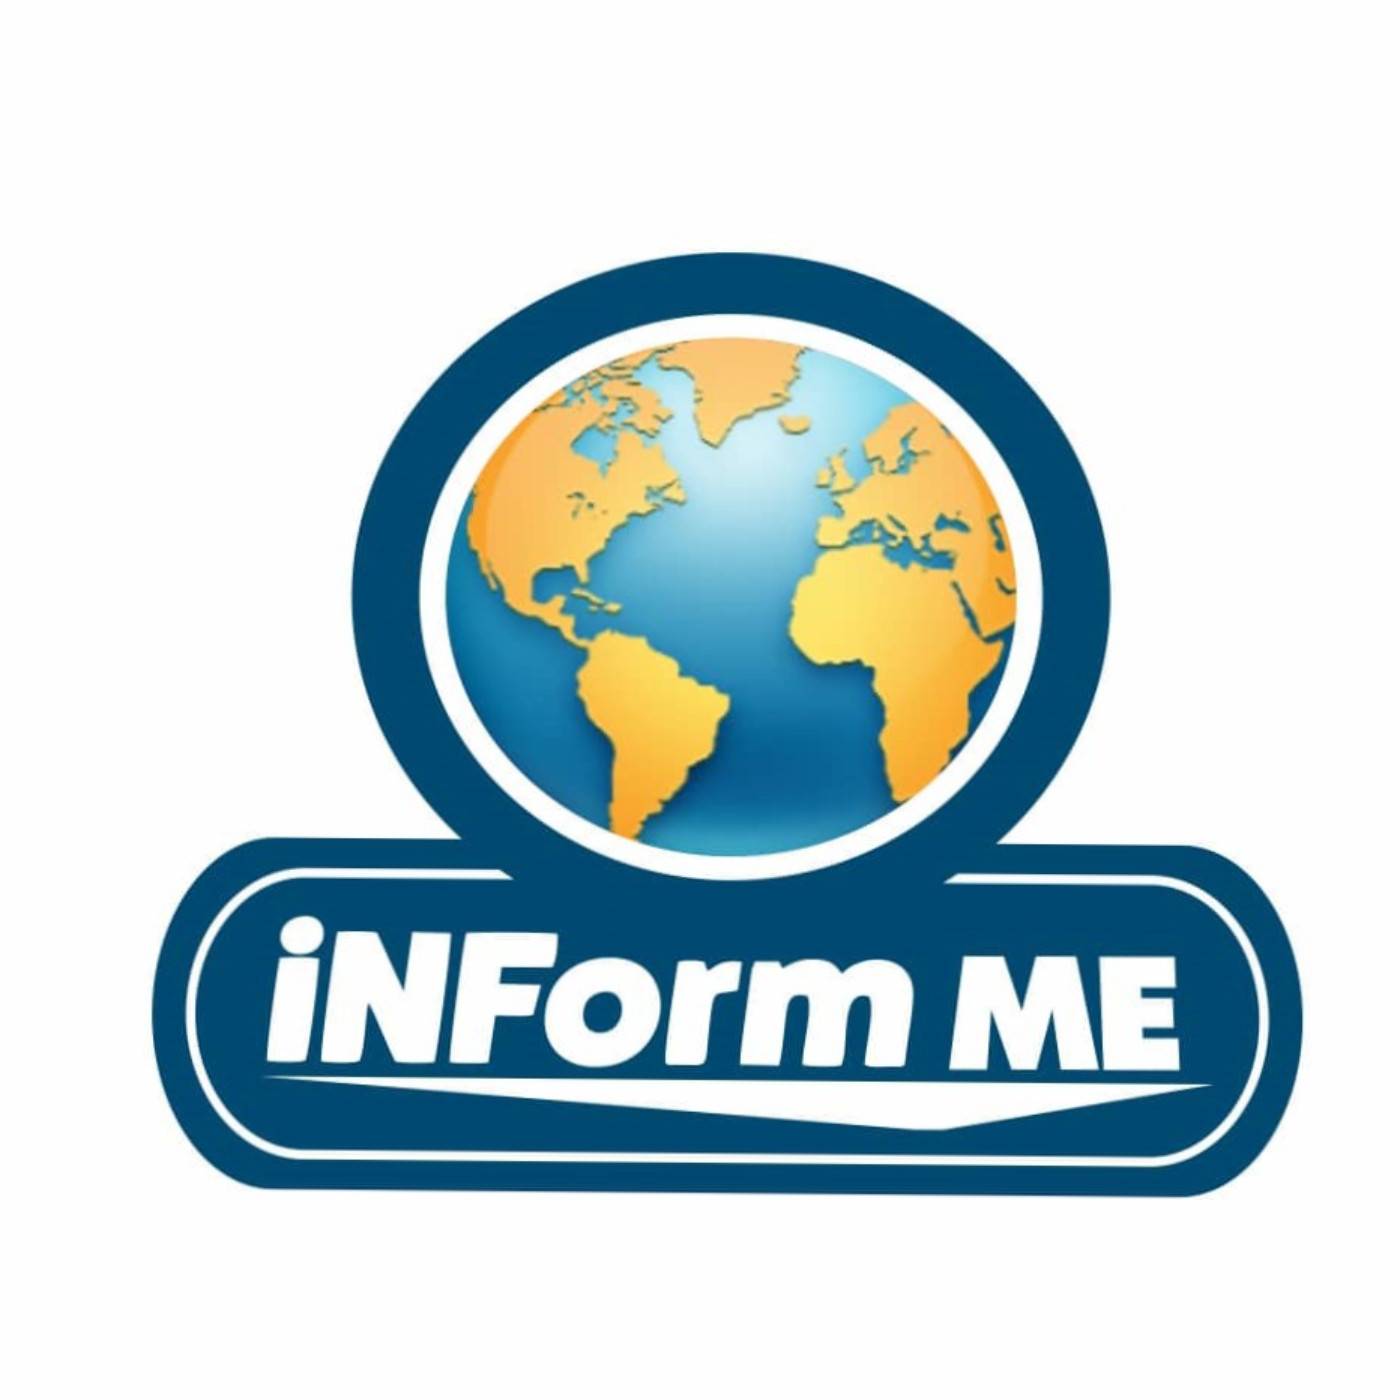 Inform Me ( Ensure availability abd sustainable management of Water and Sanitation for all ) 21st of April 2021